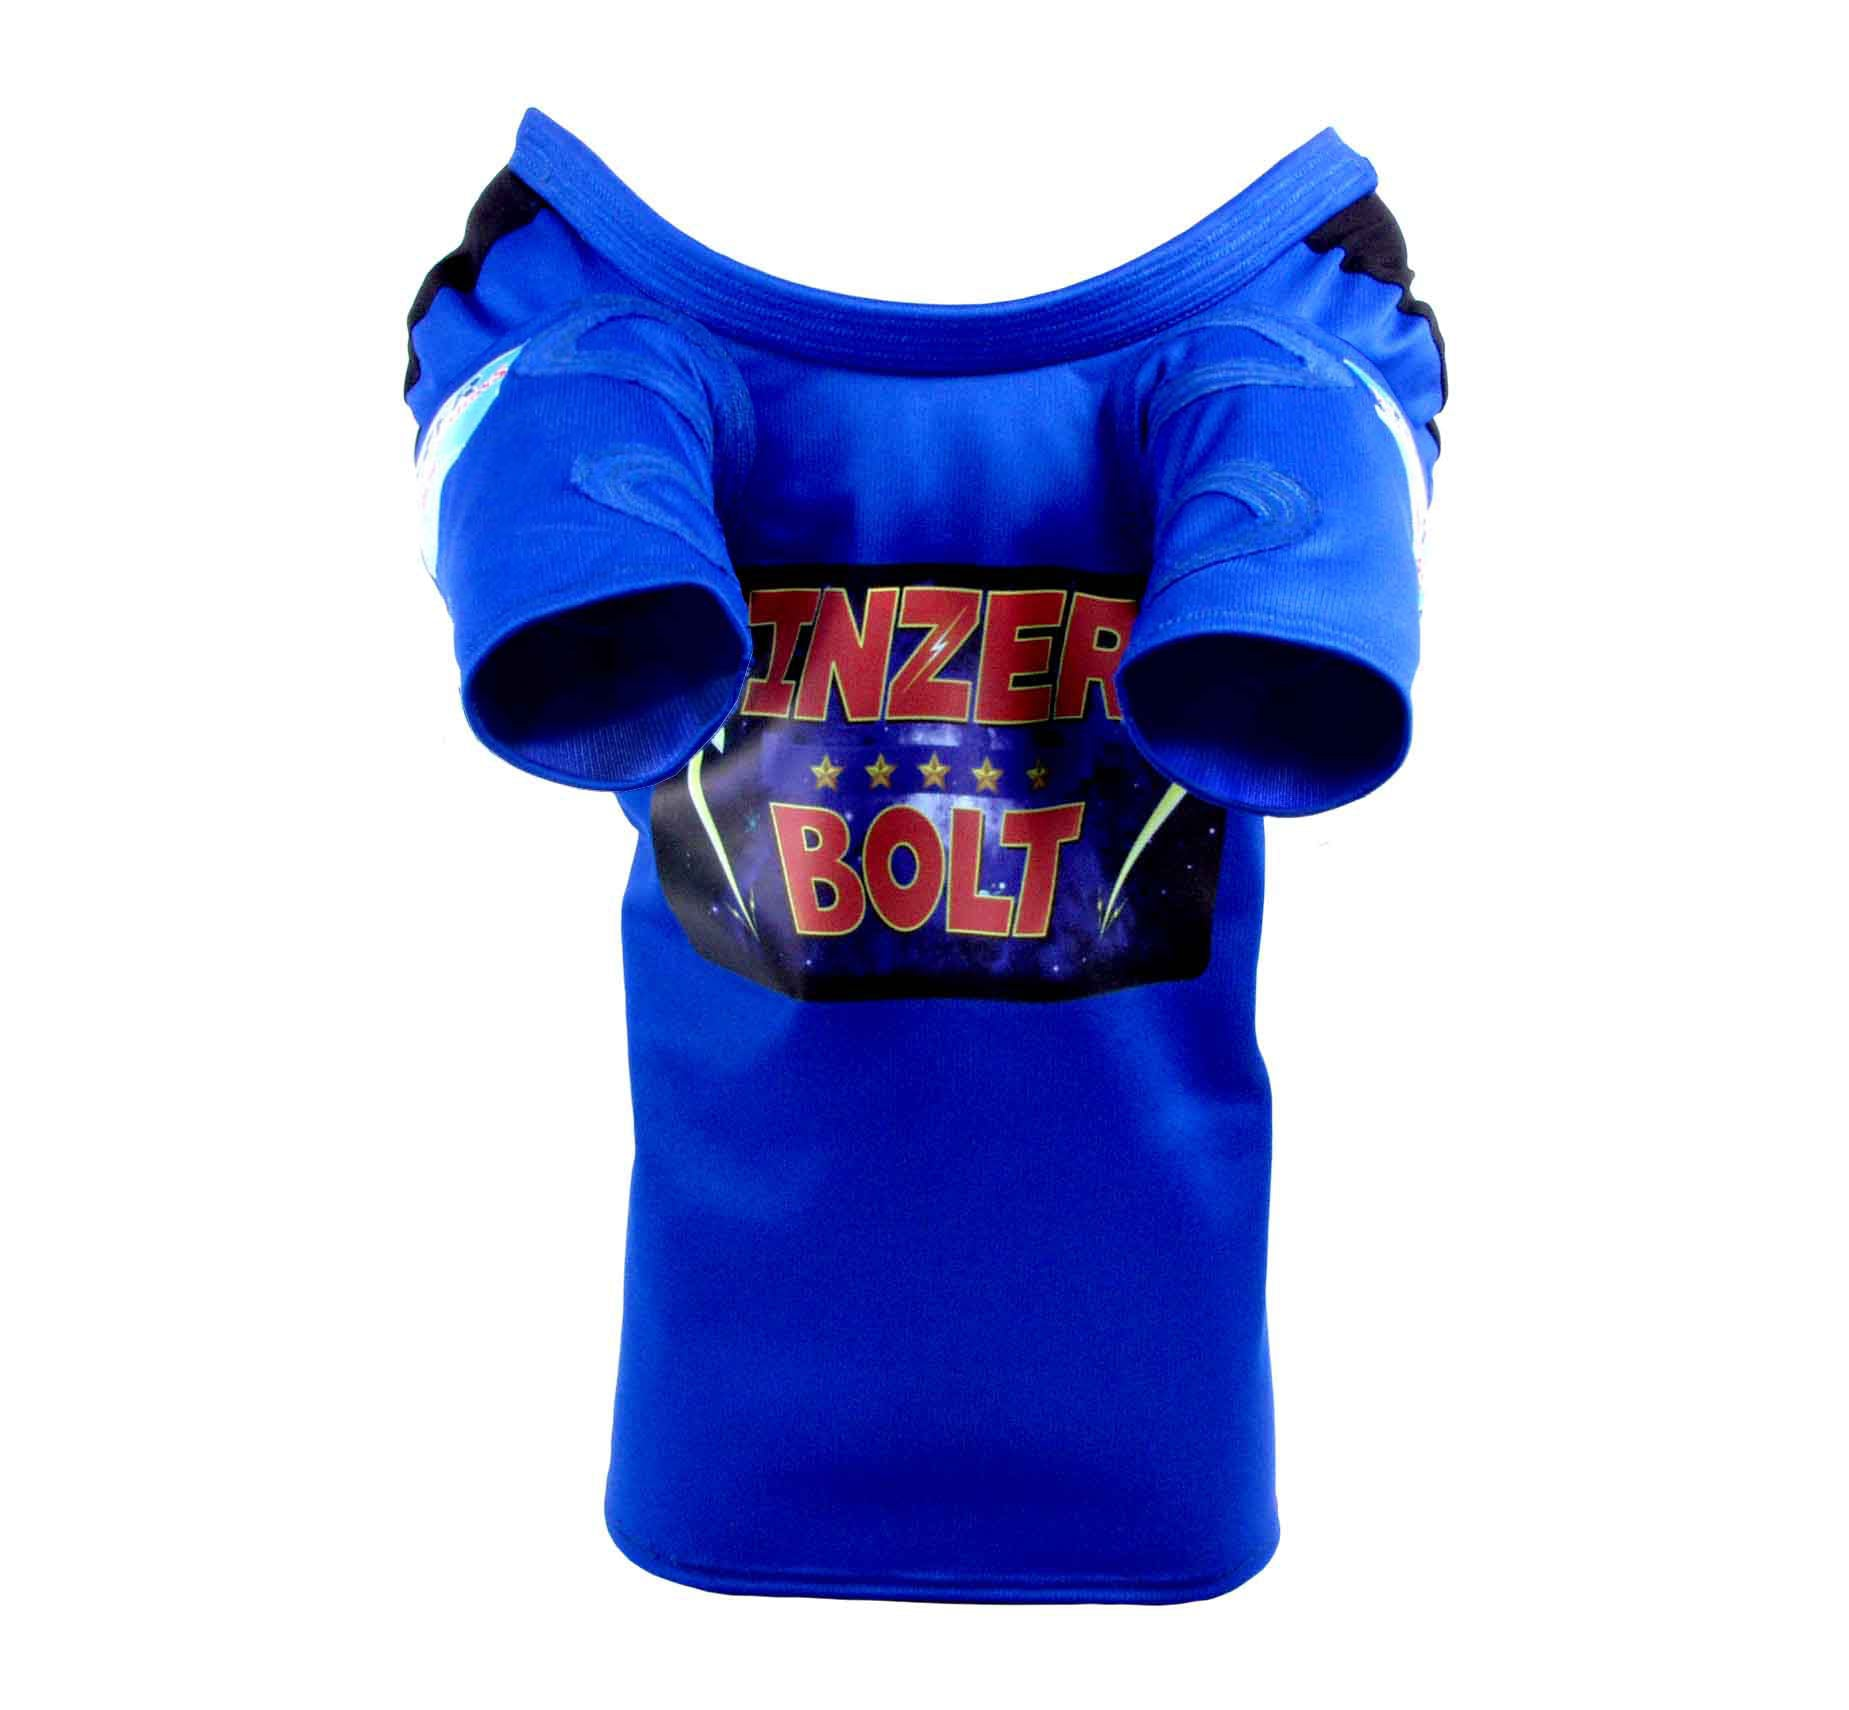 Bolt Bench Press Shirt, from Inzer Advance Designs. The World Leader In Powerlifting Belts and Powerlifting Gear